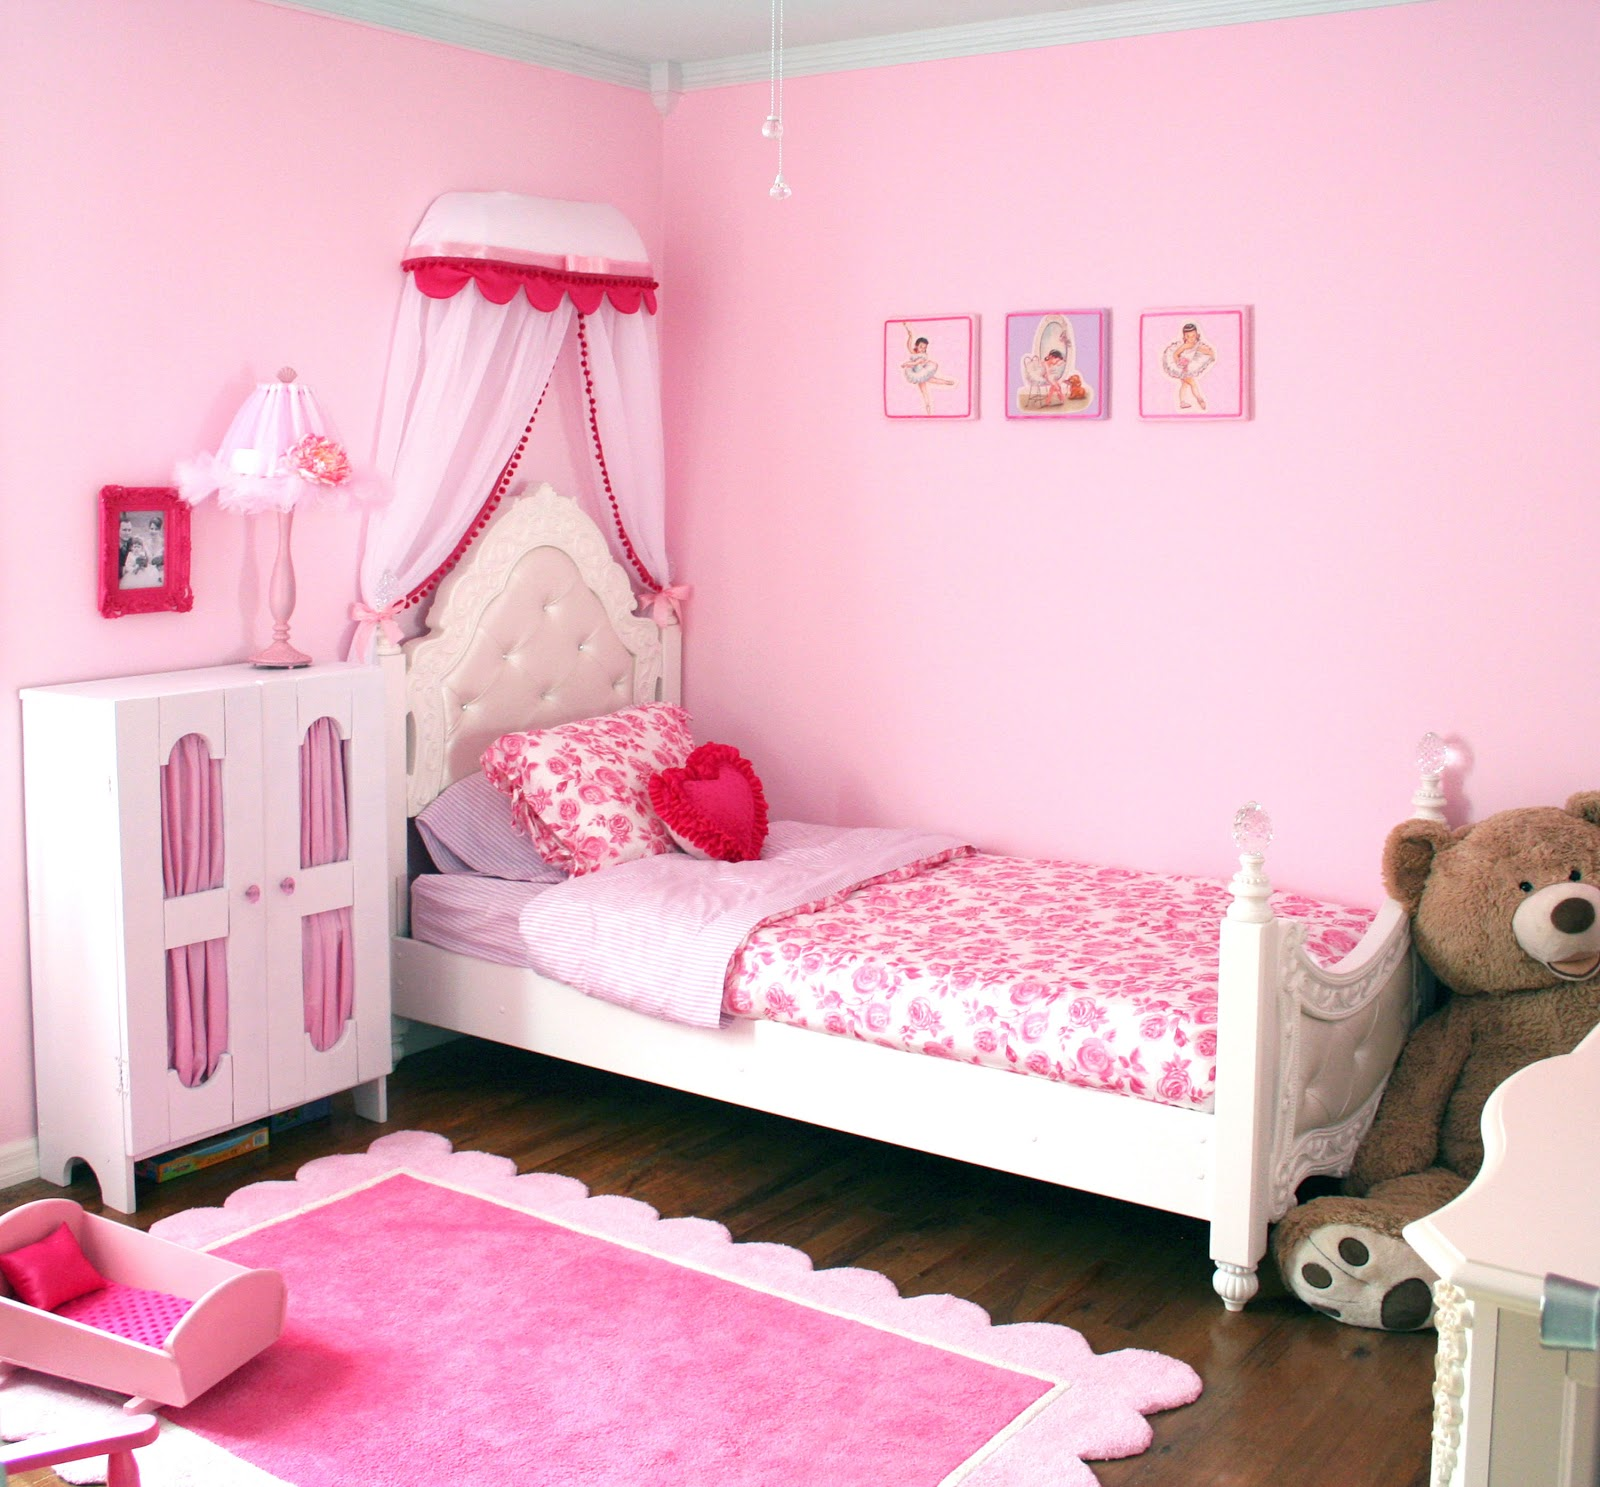 Princess Room : Moms Eat Cold Food: Toddler Princess Room - Finished!